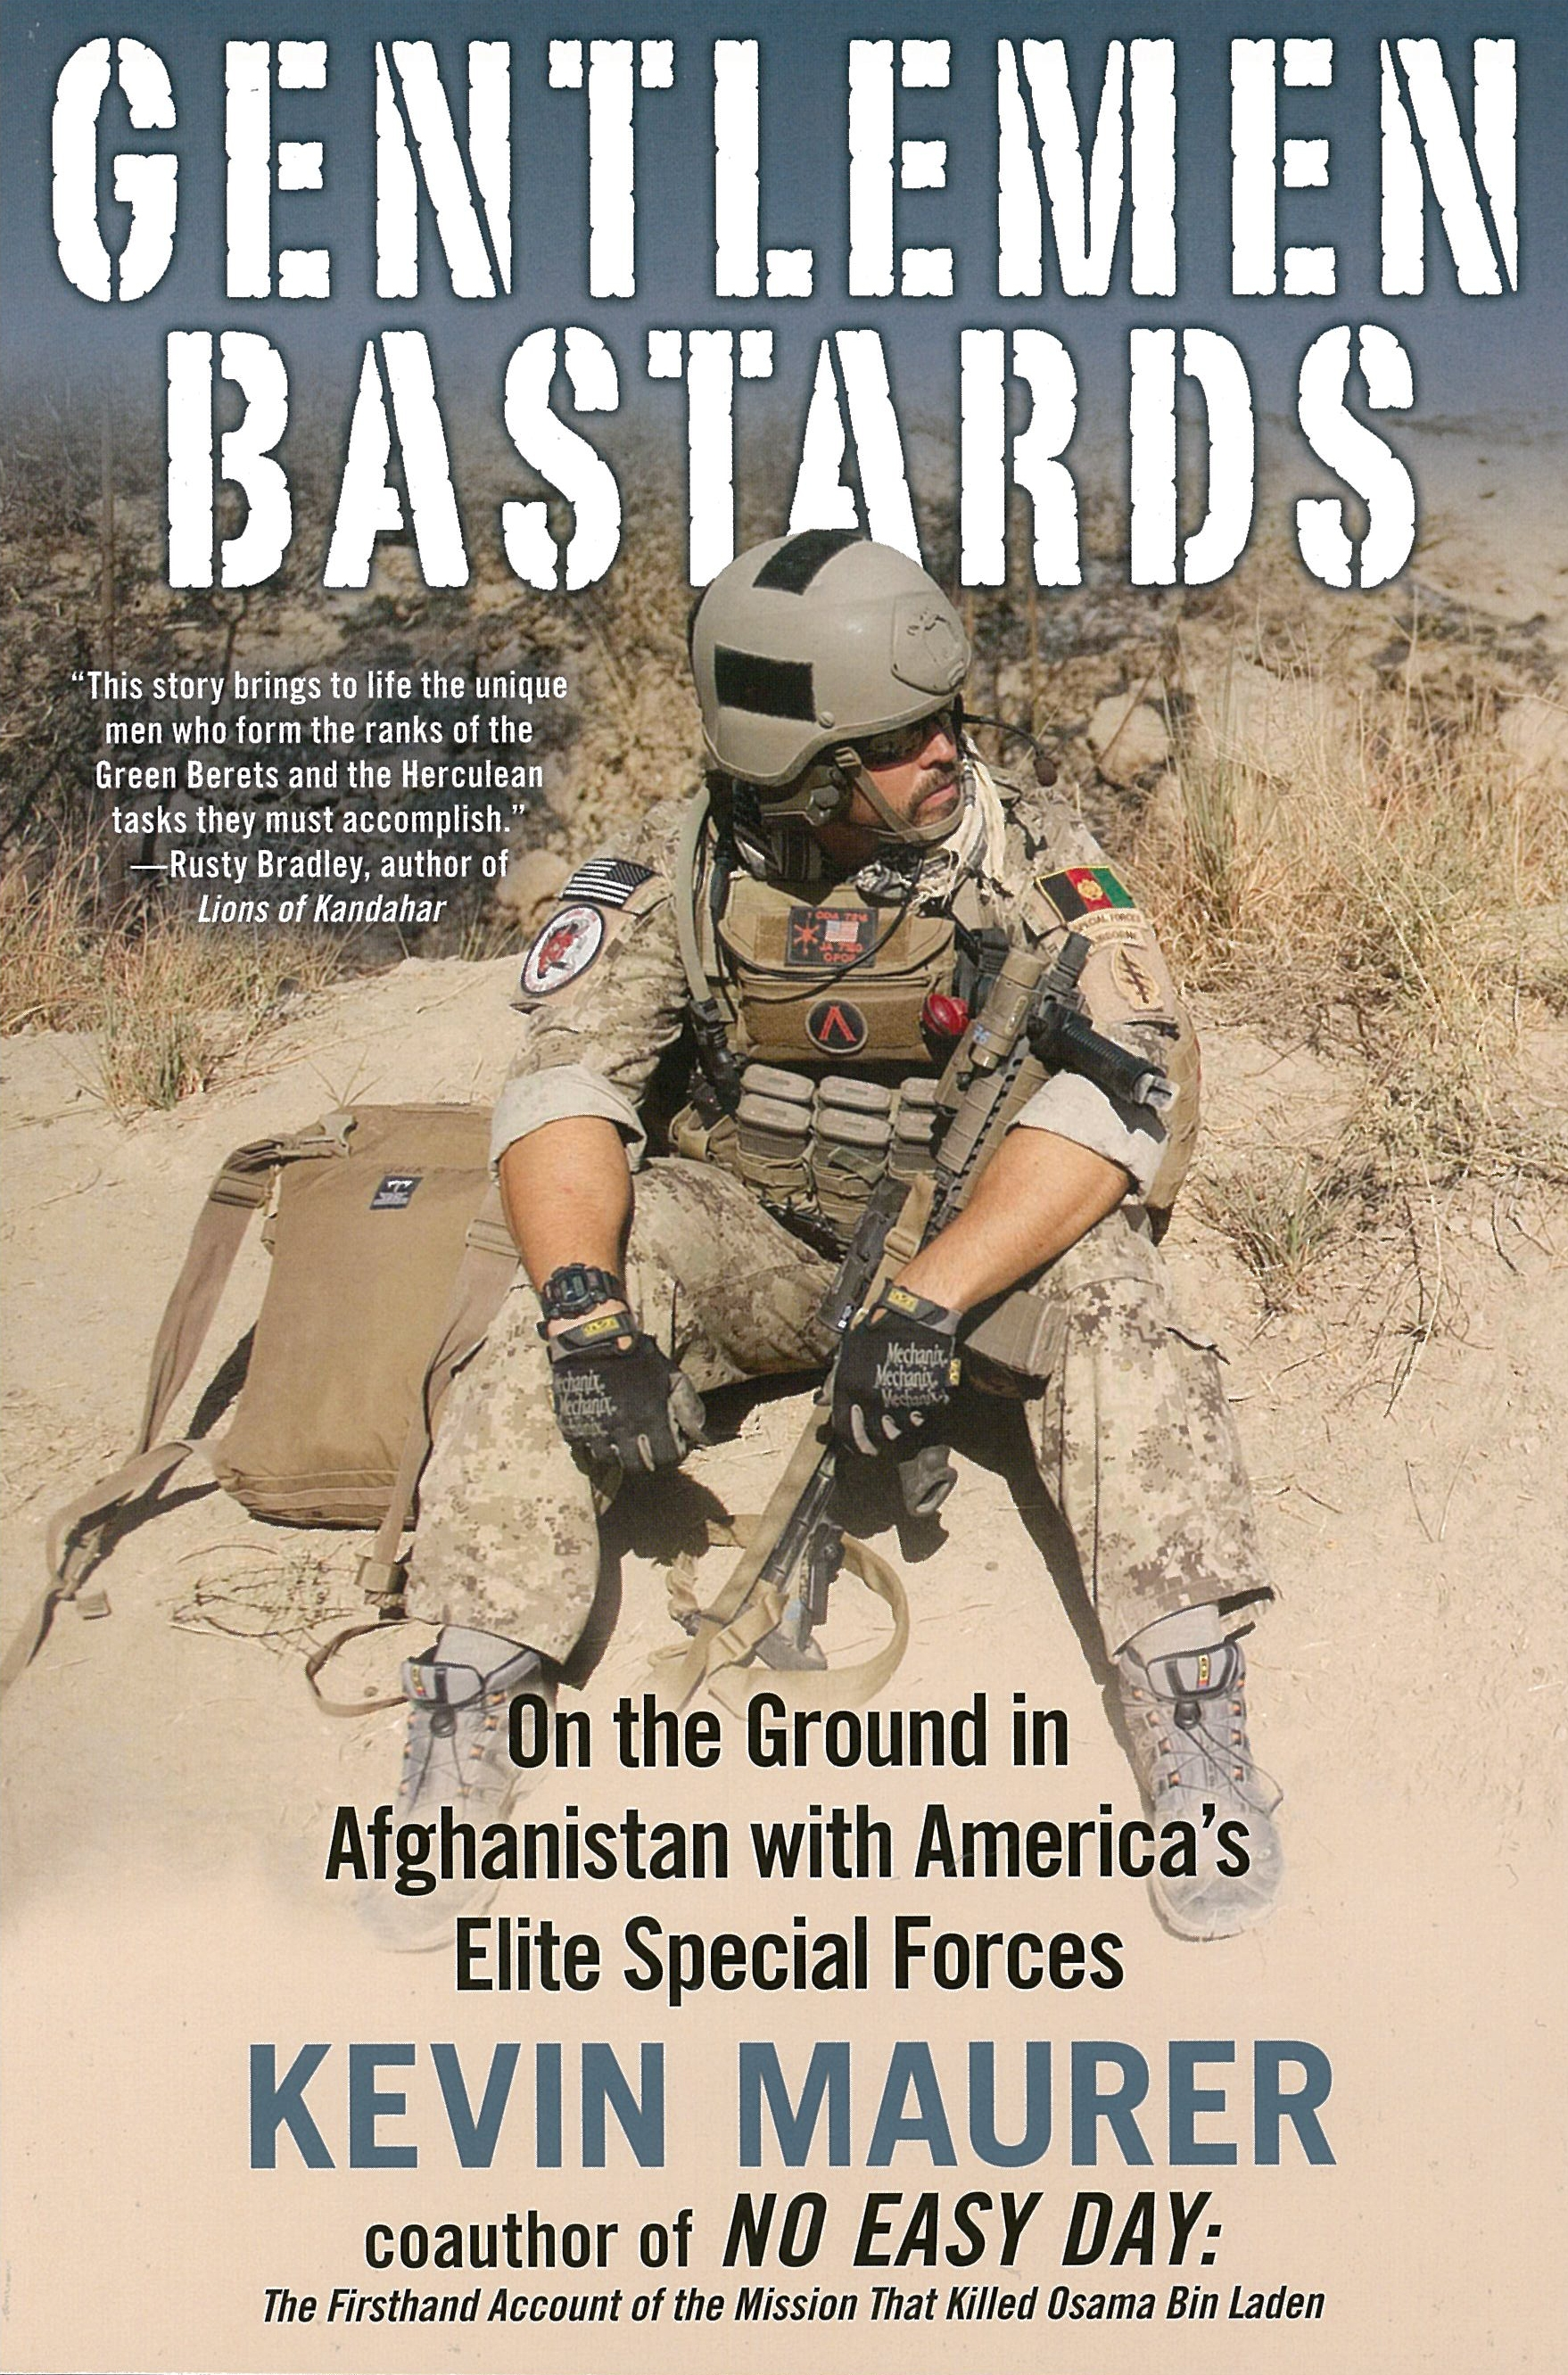 Gentlemen Bastards: On the Ground in Afghanistan with America's